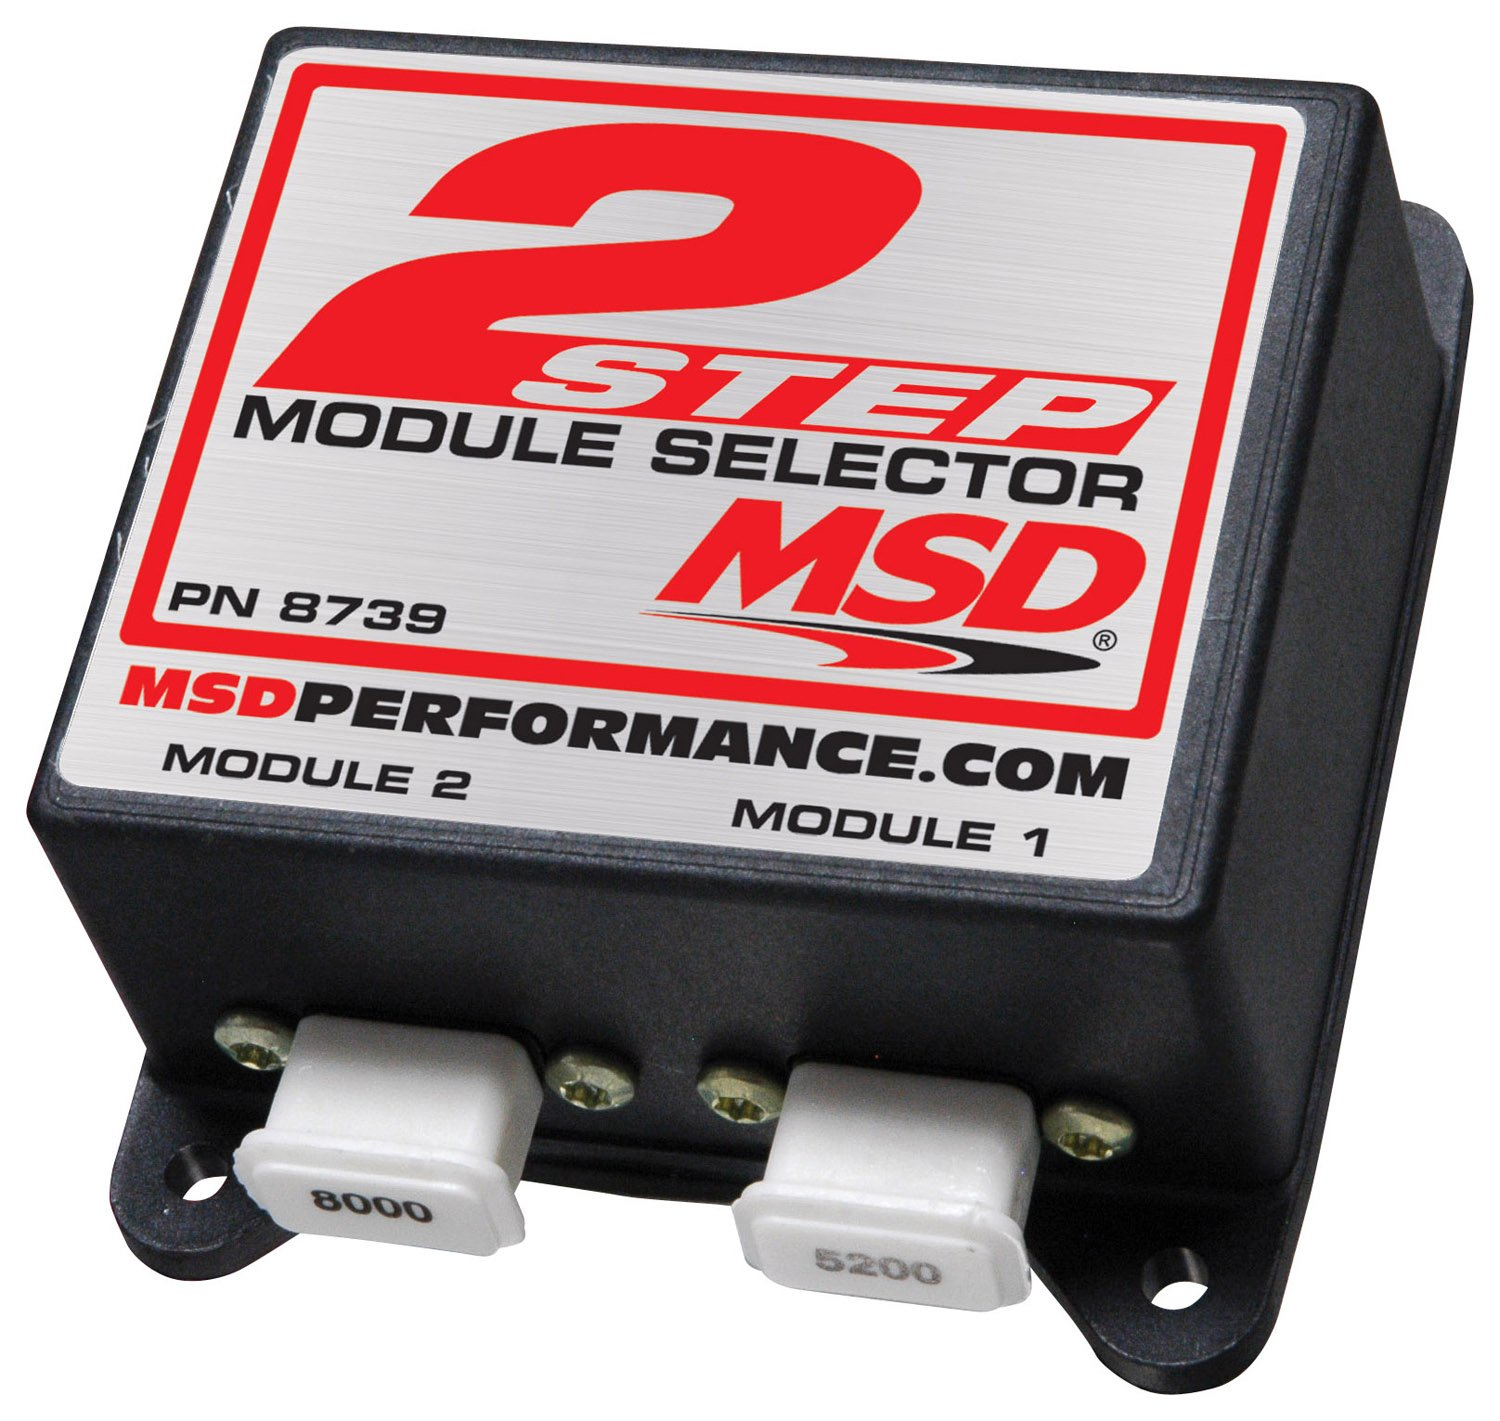 msd 2 step for msd 6a msd 8739 two step module selector - msd performance products